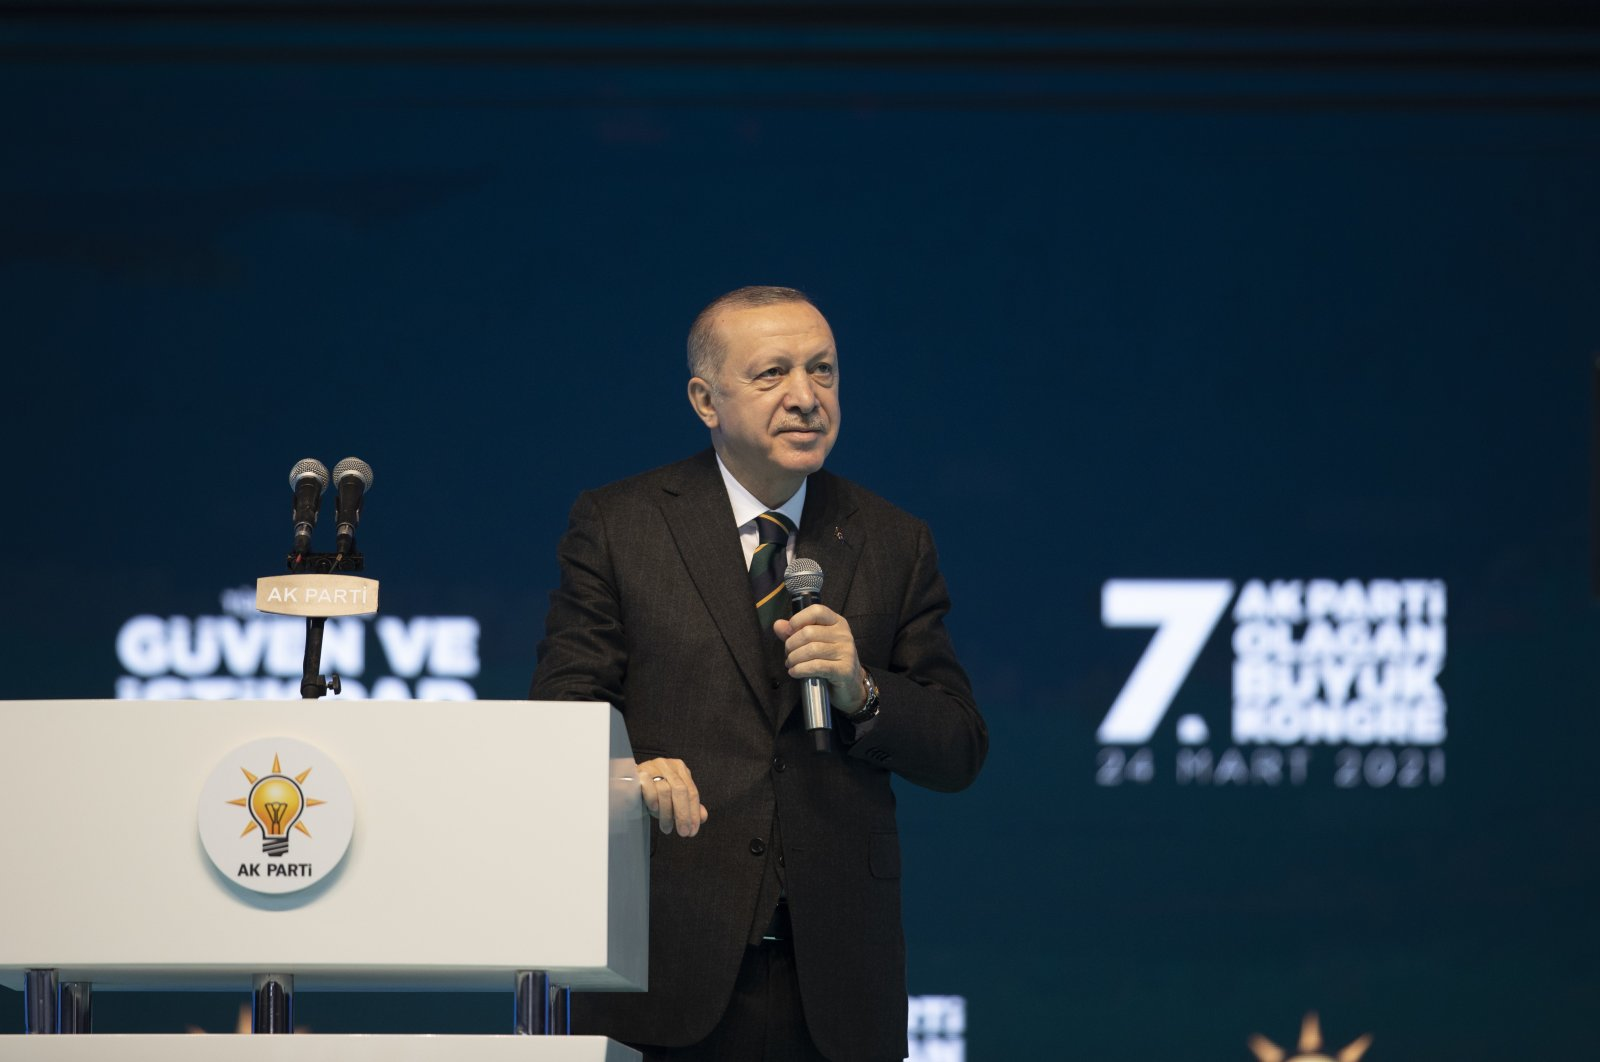 President Recep Tayyip Erdoğan speaks during the Seventh Grand Ordinary Congress of the ruling Justice and Development (AK Party), Ankara, Turkey, March 24, 2021. (AA Photo)